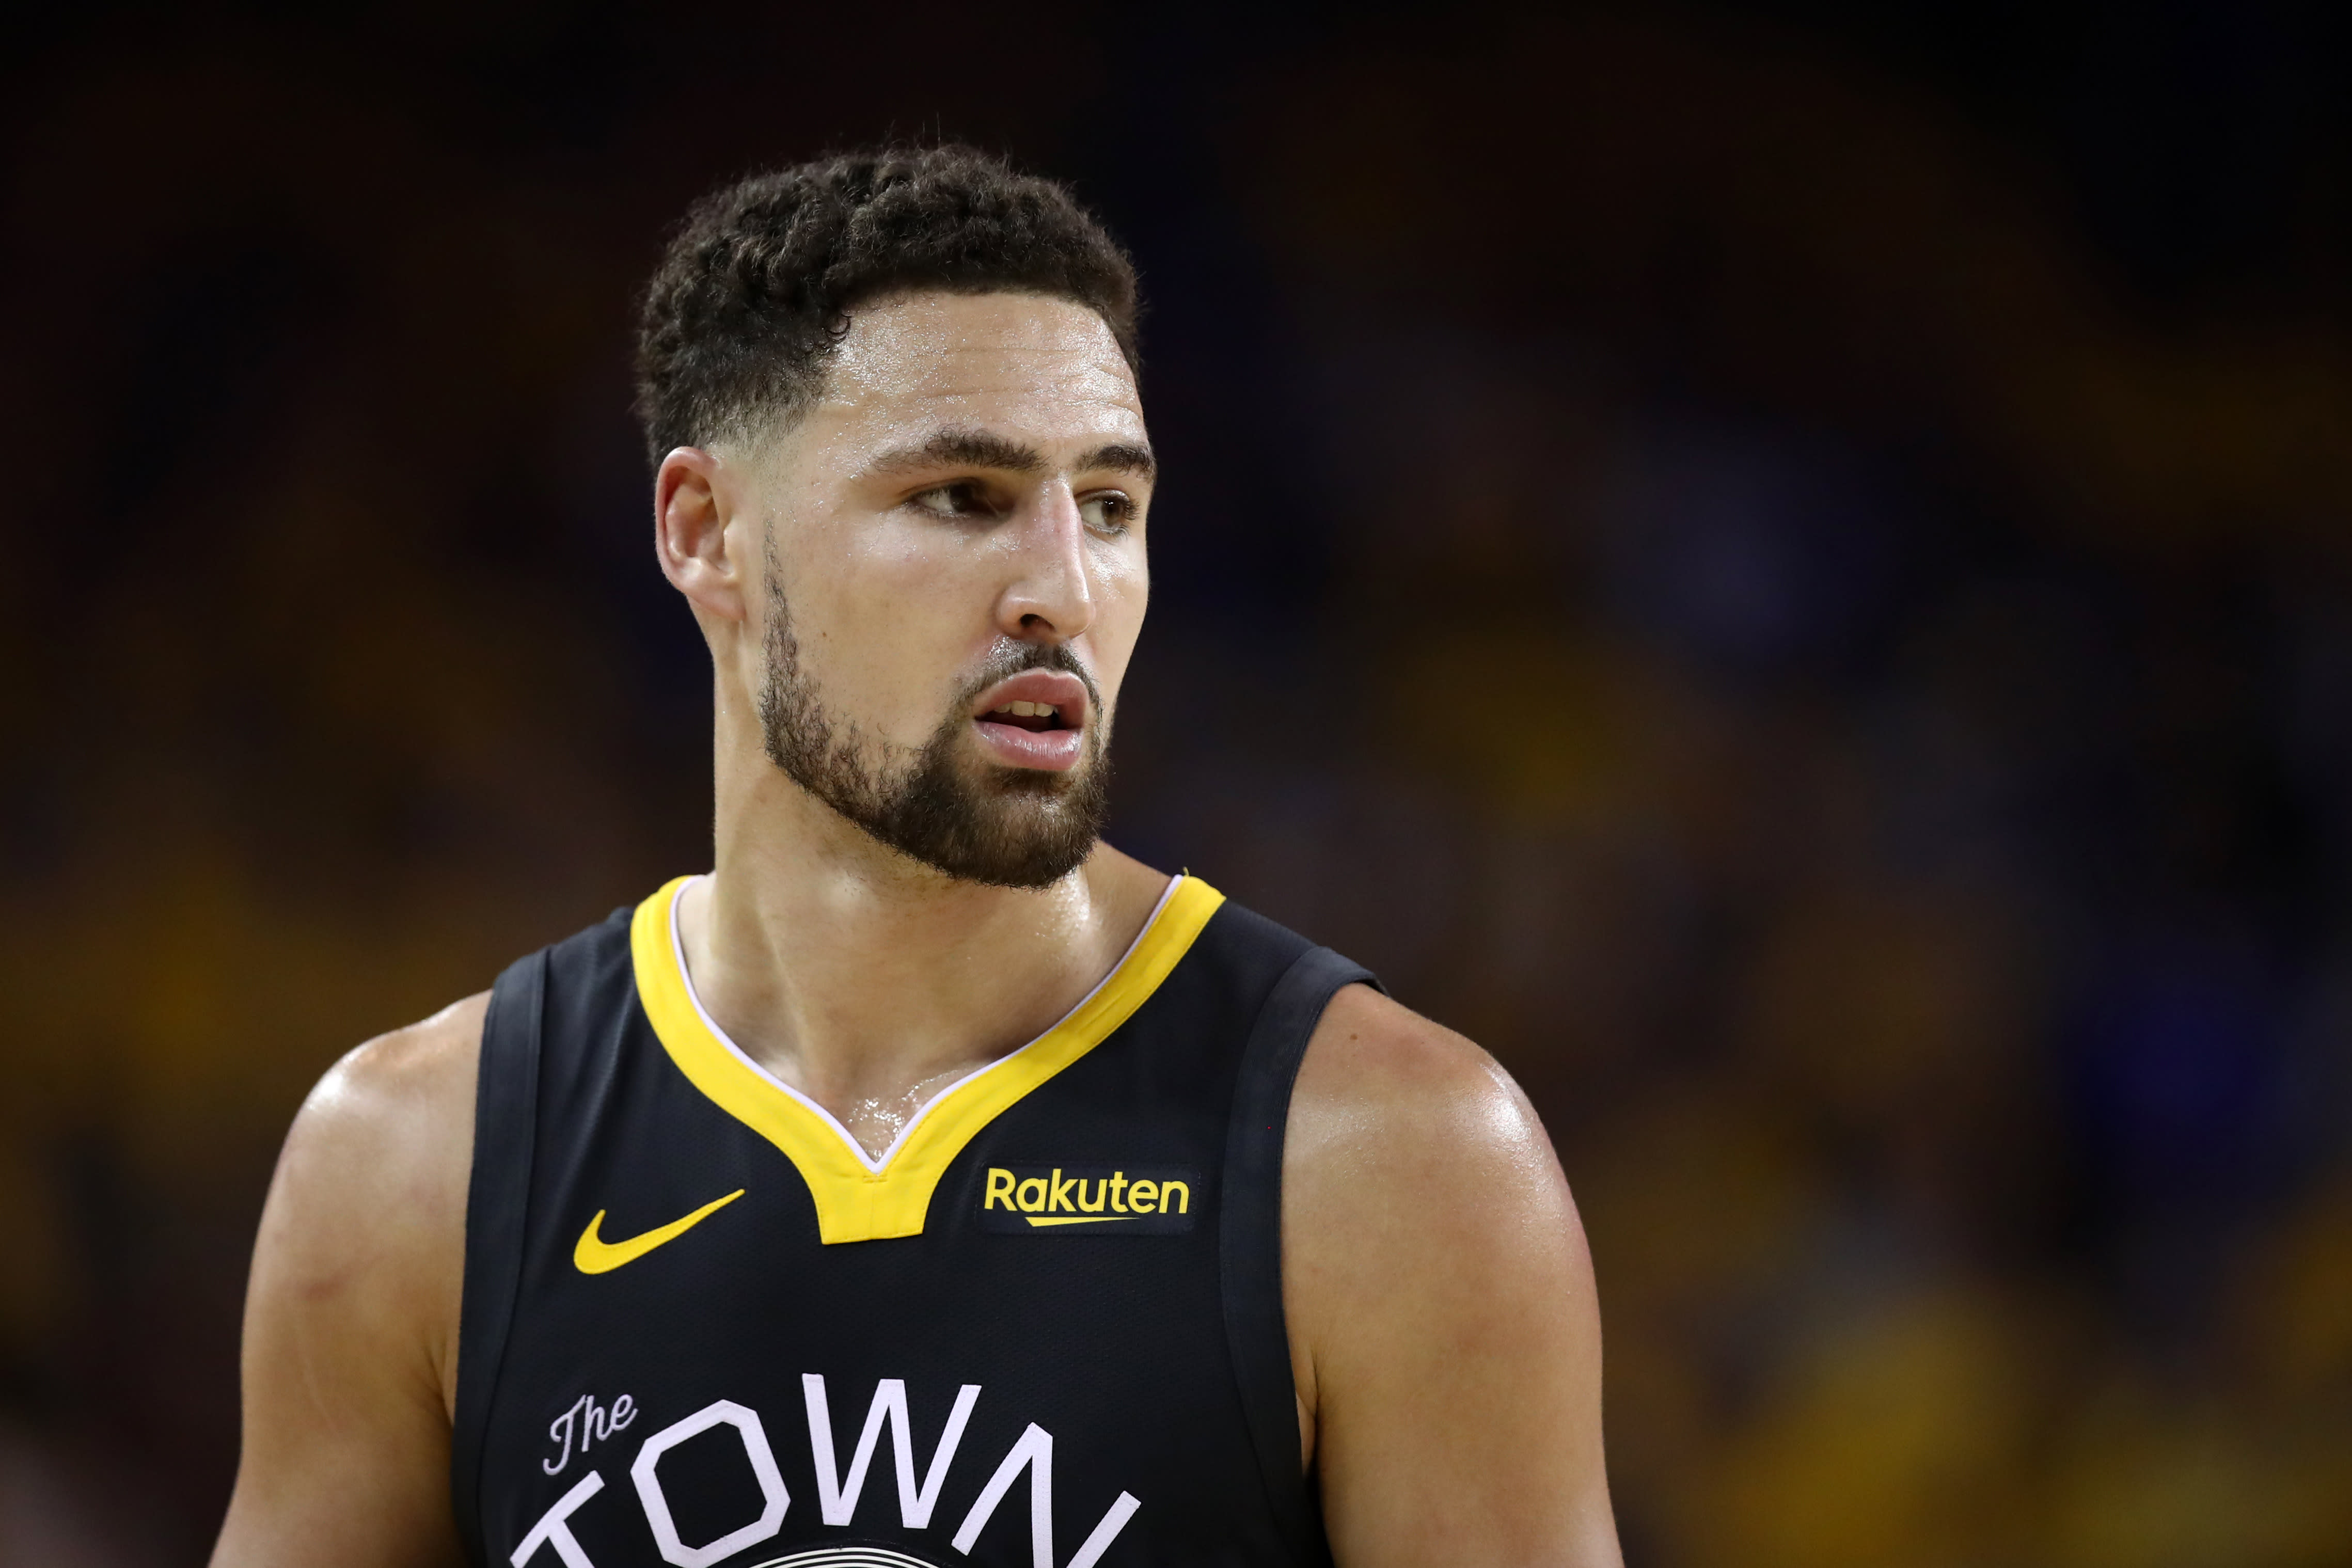 Golden State Warriors' Klay Thompson says this is the top financial mistake he made his rookie year